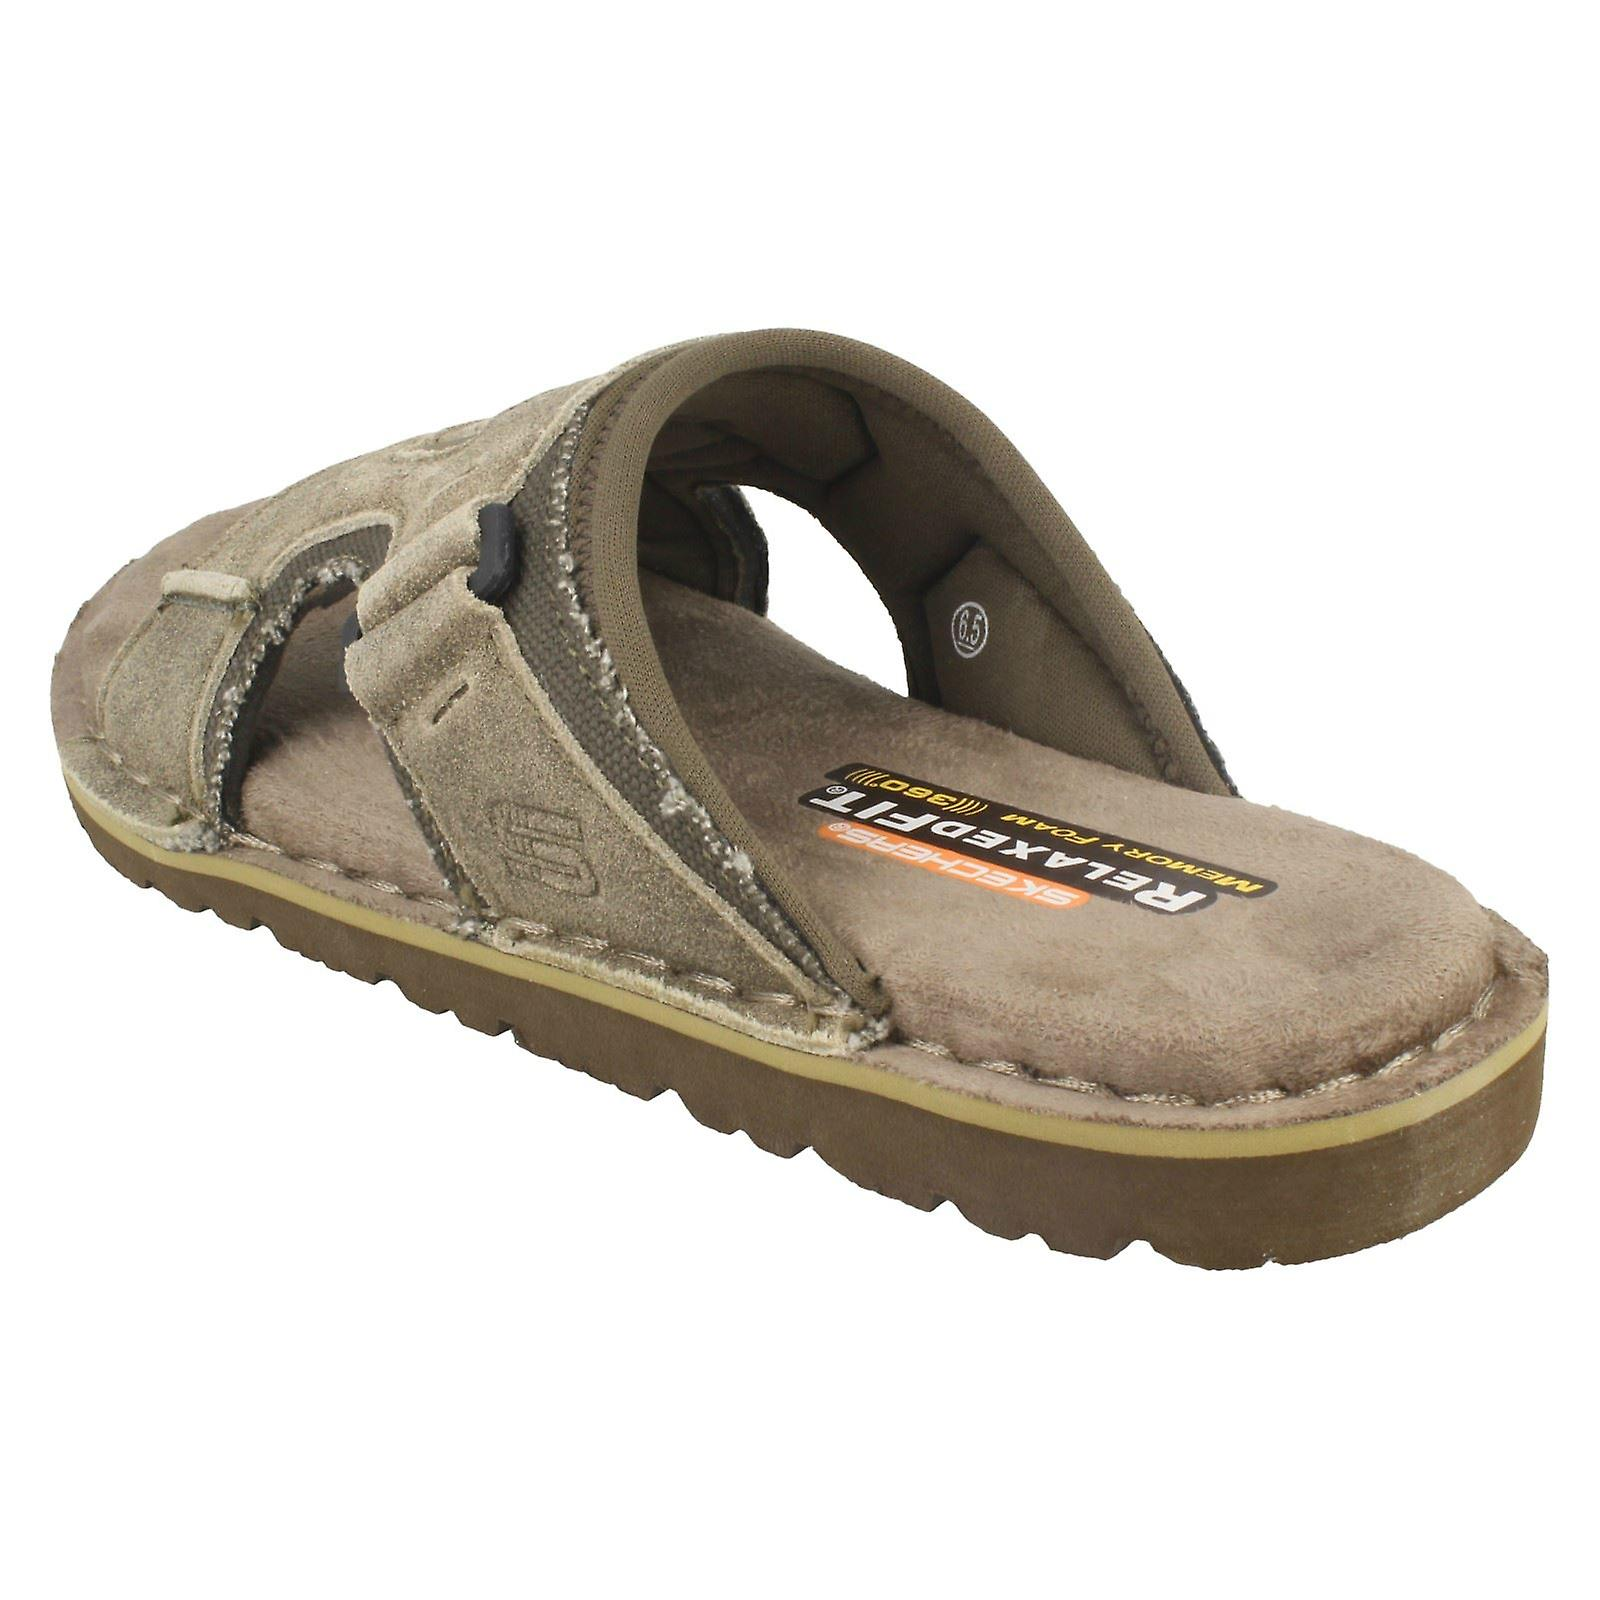 ffb6cd549ec8 Mens Skechers with Memory Foam Relaxed Fit Sandals Golson 64148